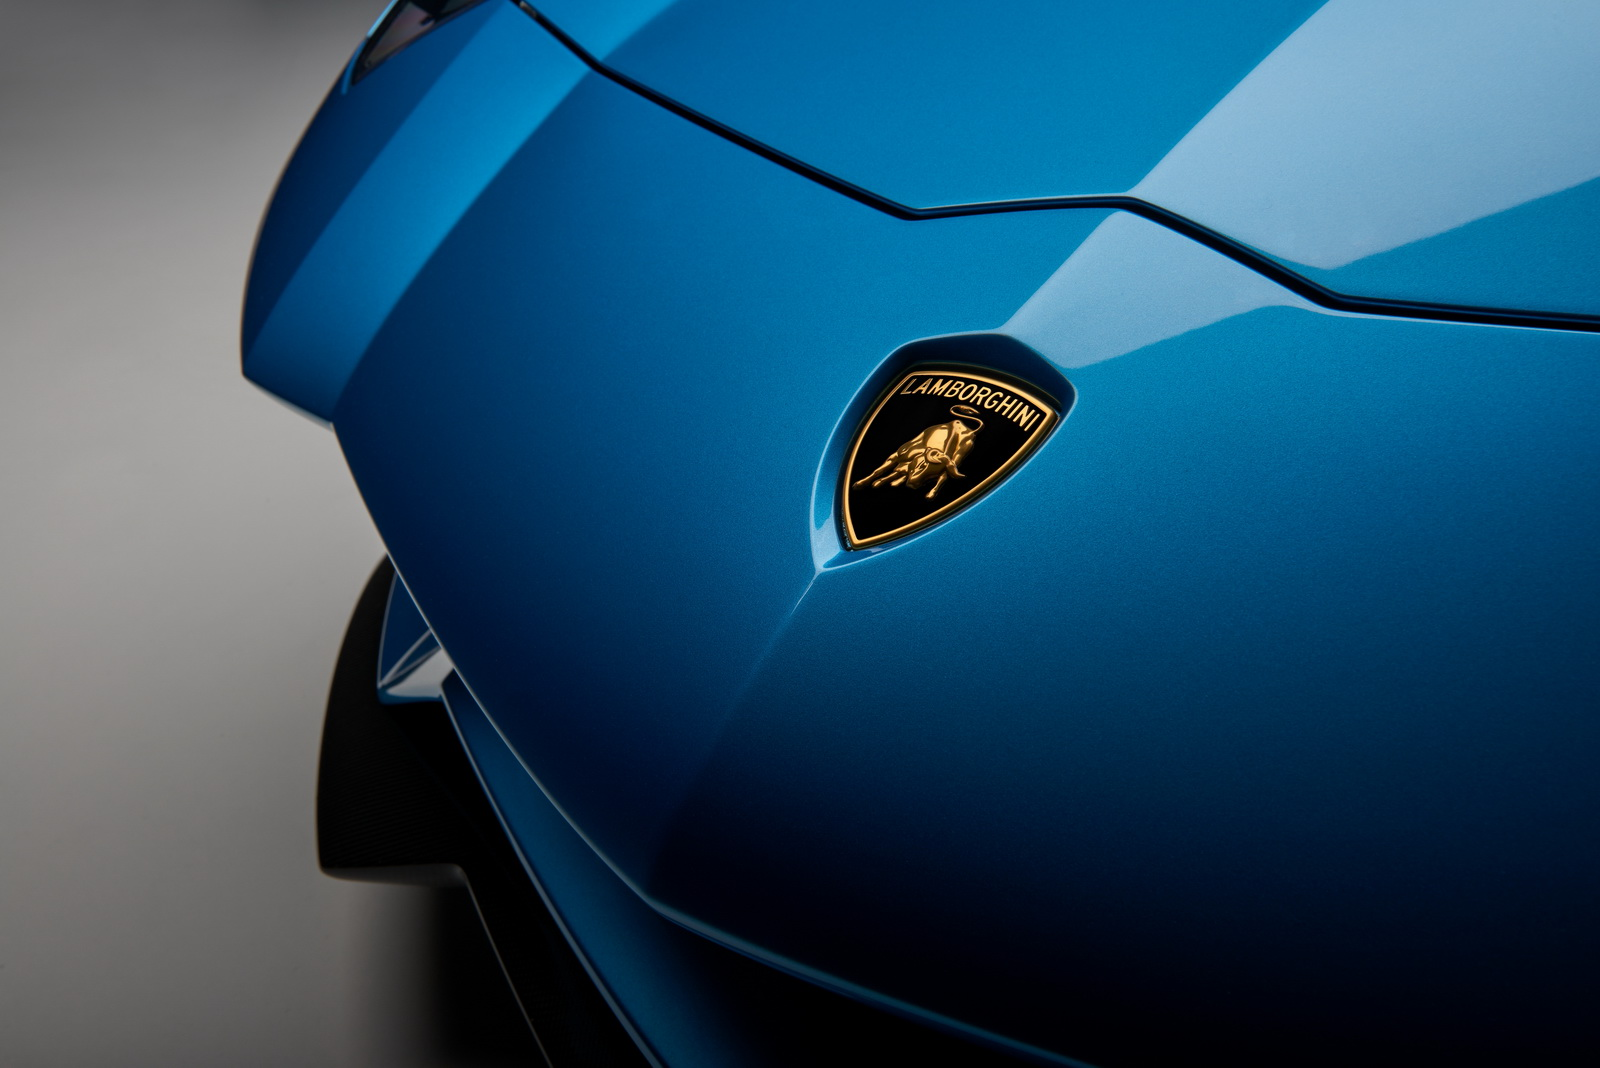 Lamborghini Reveals The 2018 Aventador S Roadster Before Its Official Debut